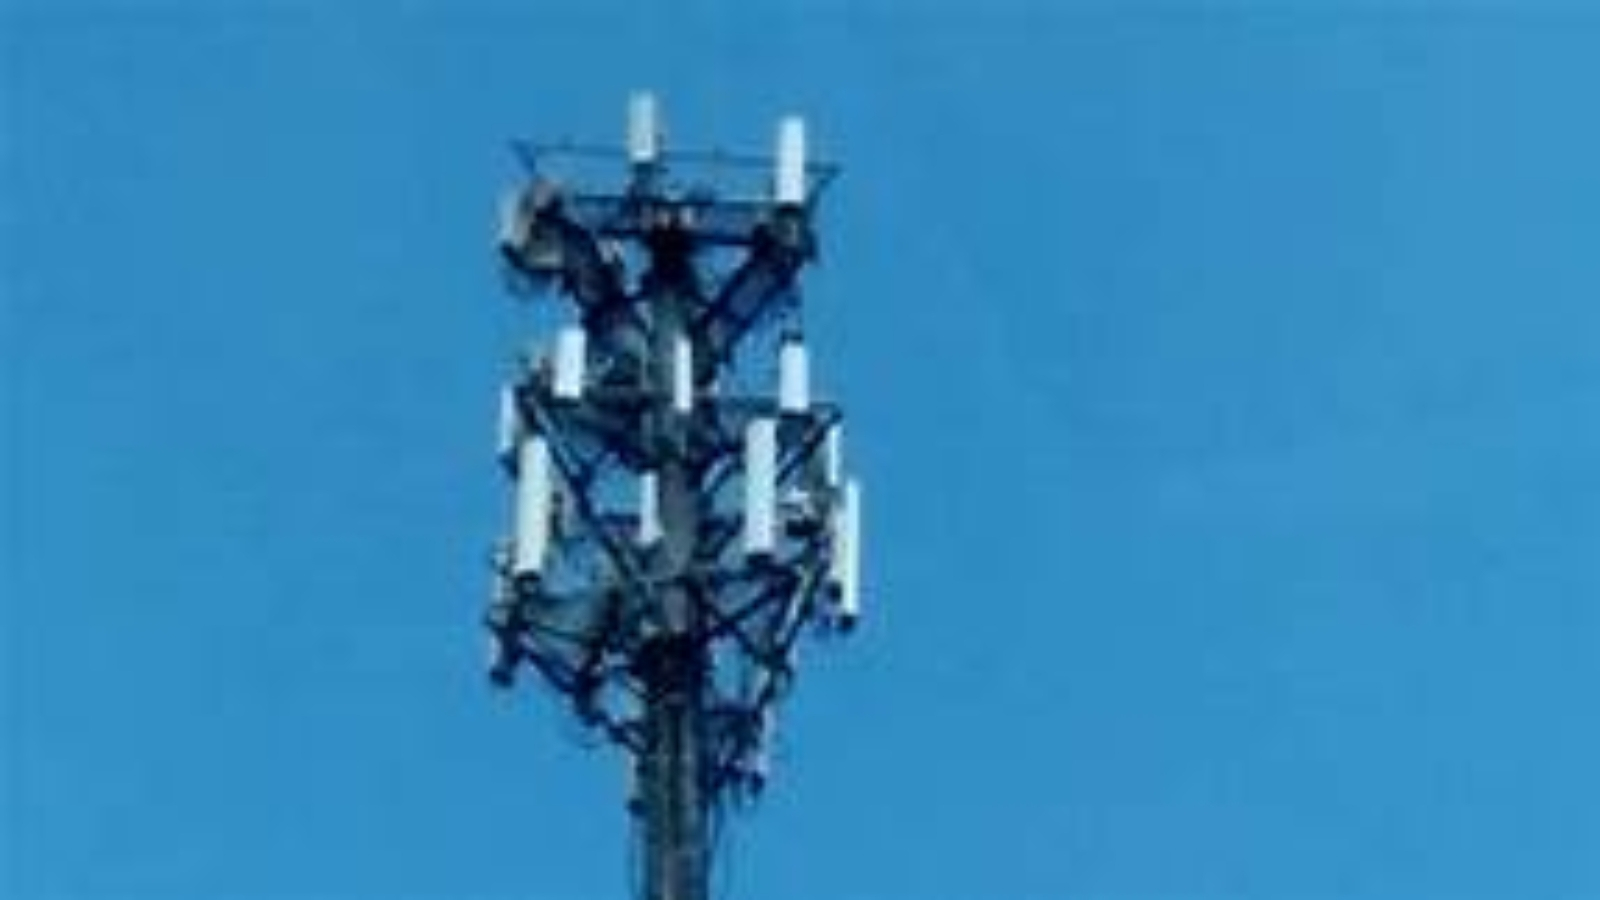 Electro sensitivity: 5G Towers are Showing Health Risks